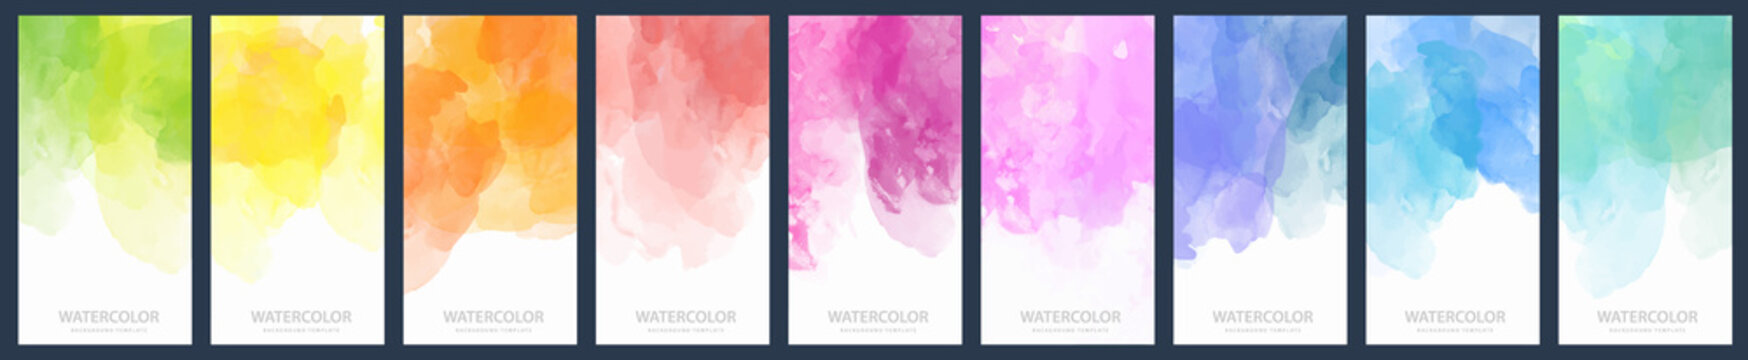 Set of light colorful vector watercolor vertical backgrounds for poster, banner or flyer